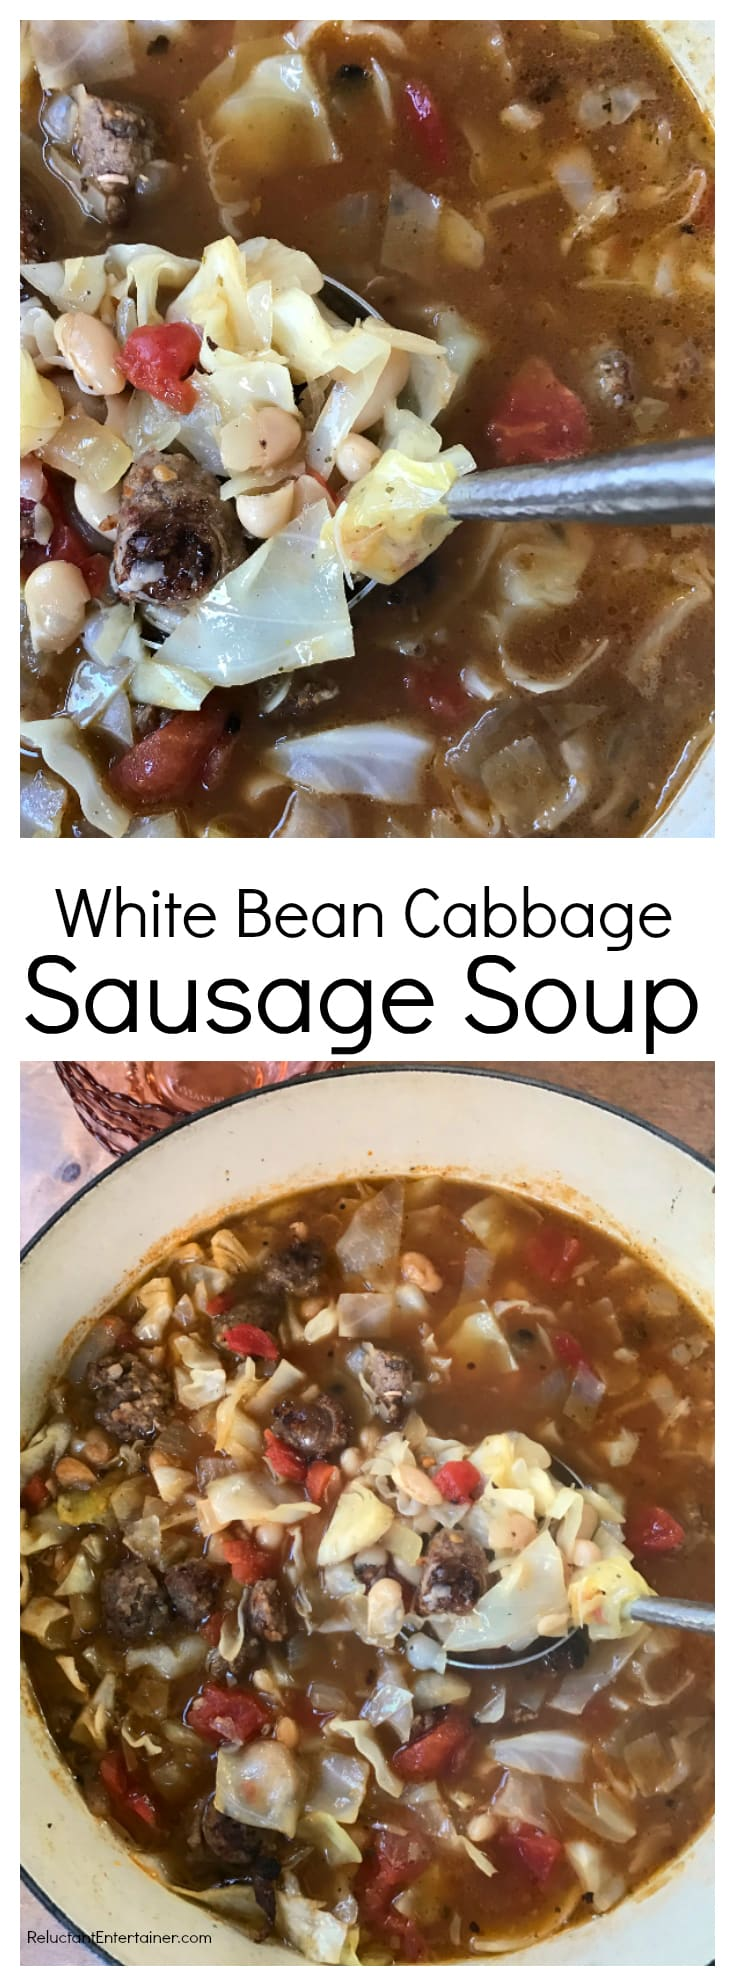 White Bean Cabbage Sausage Soup at ReluctantEntertainer.com